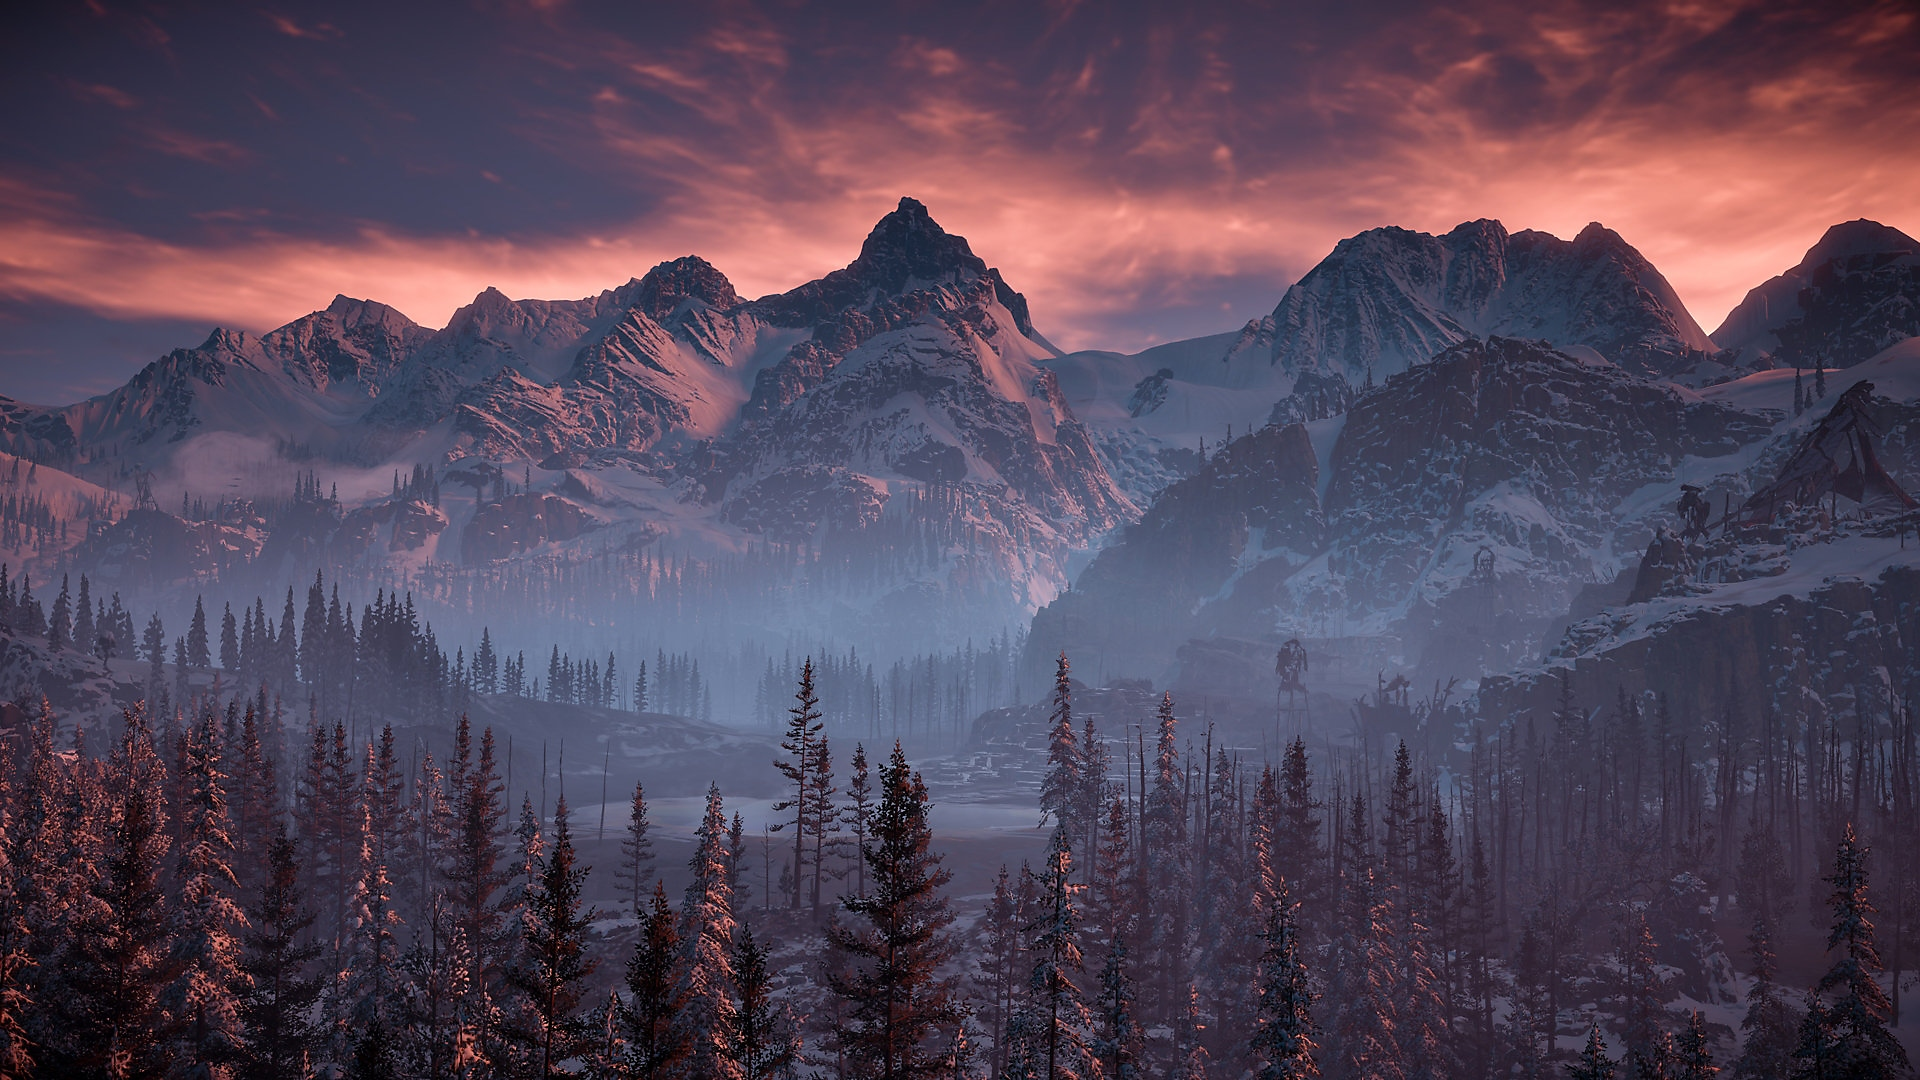 horizon zero dawn the frozen wilds background